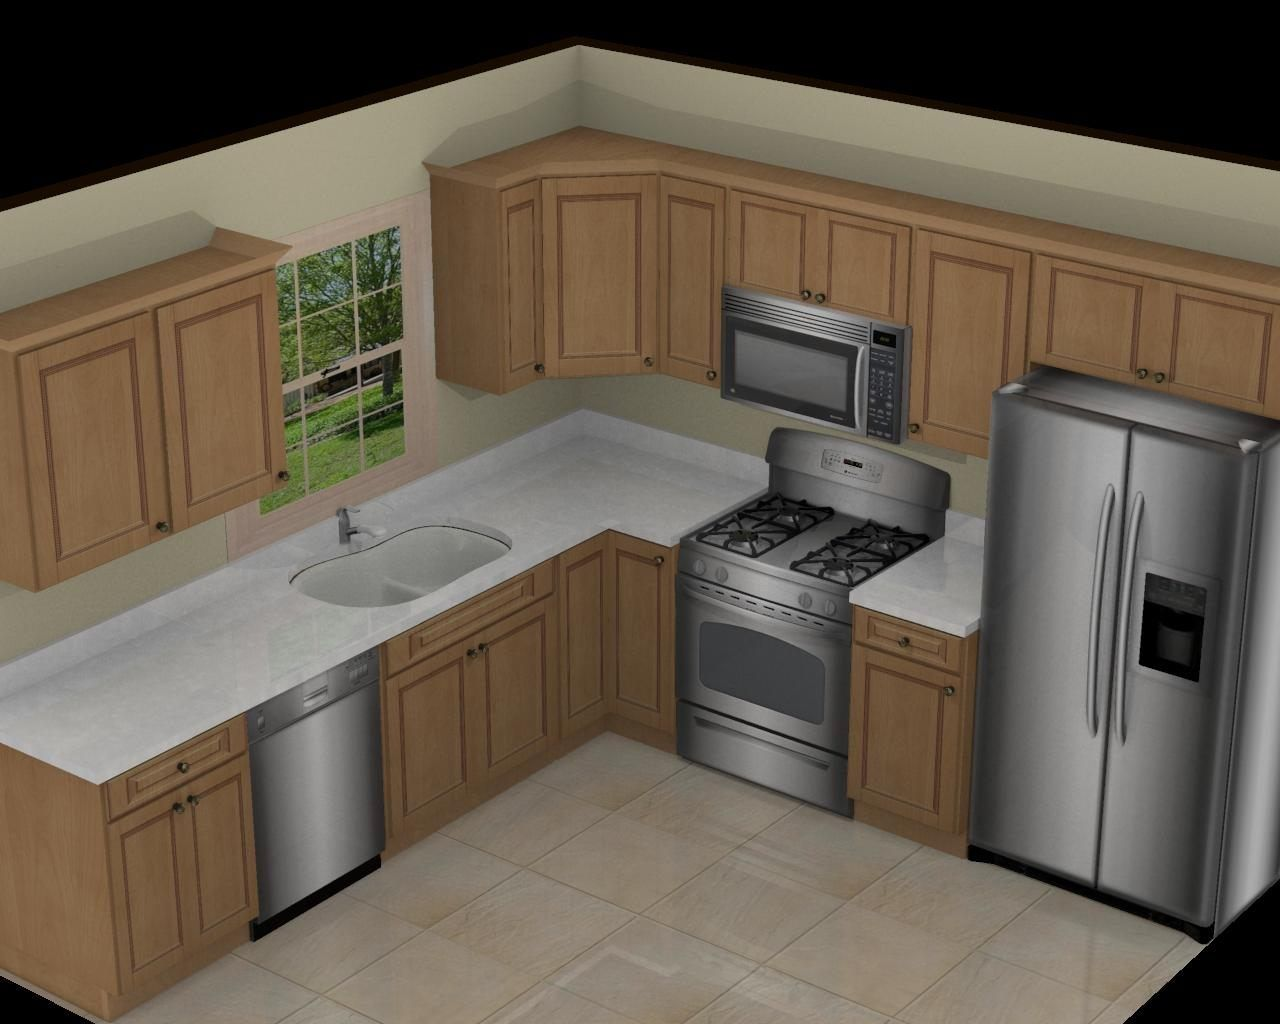 Image Result For 9x9 Kitchen Layout